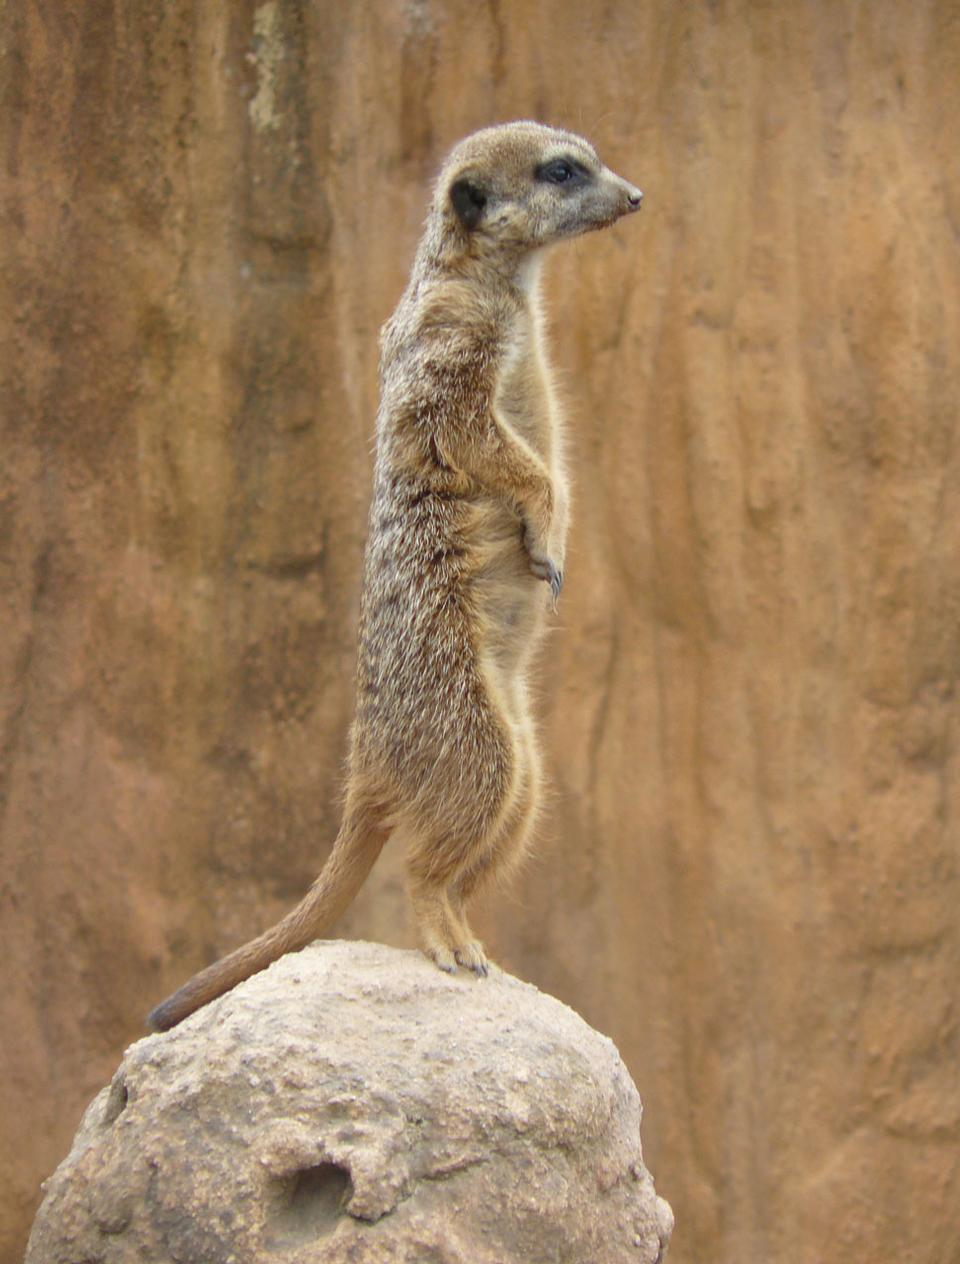 Free Photos: Meercat at the lookout for predators | Jurassic